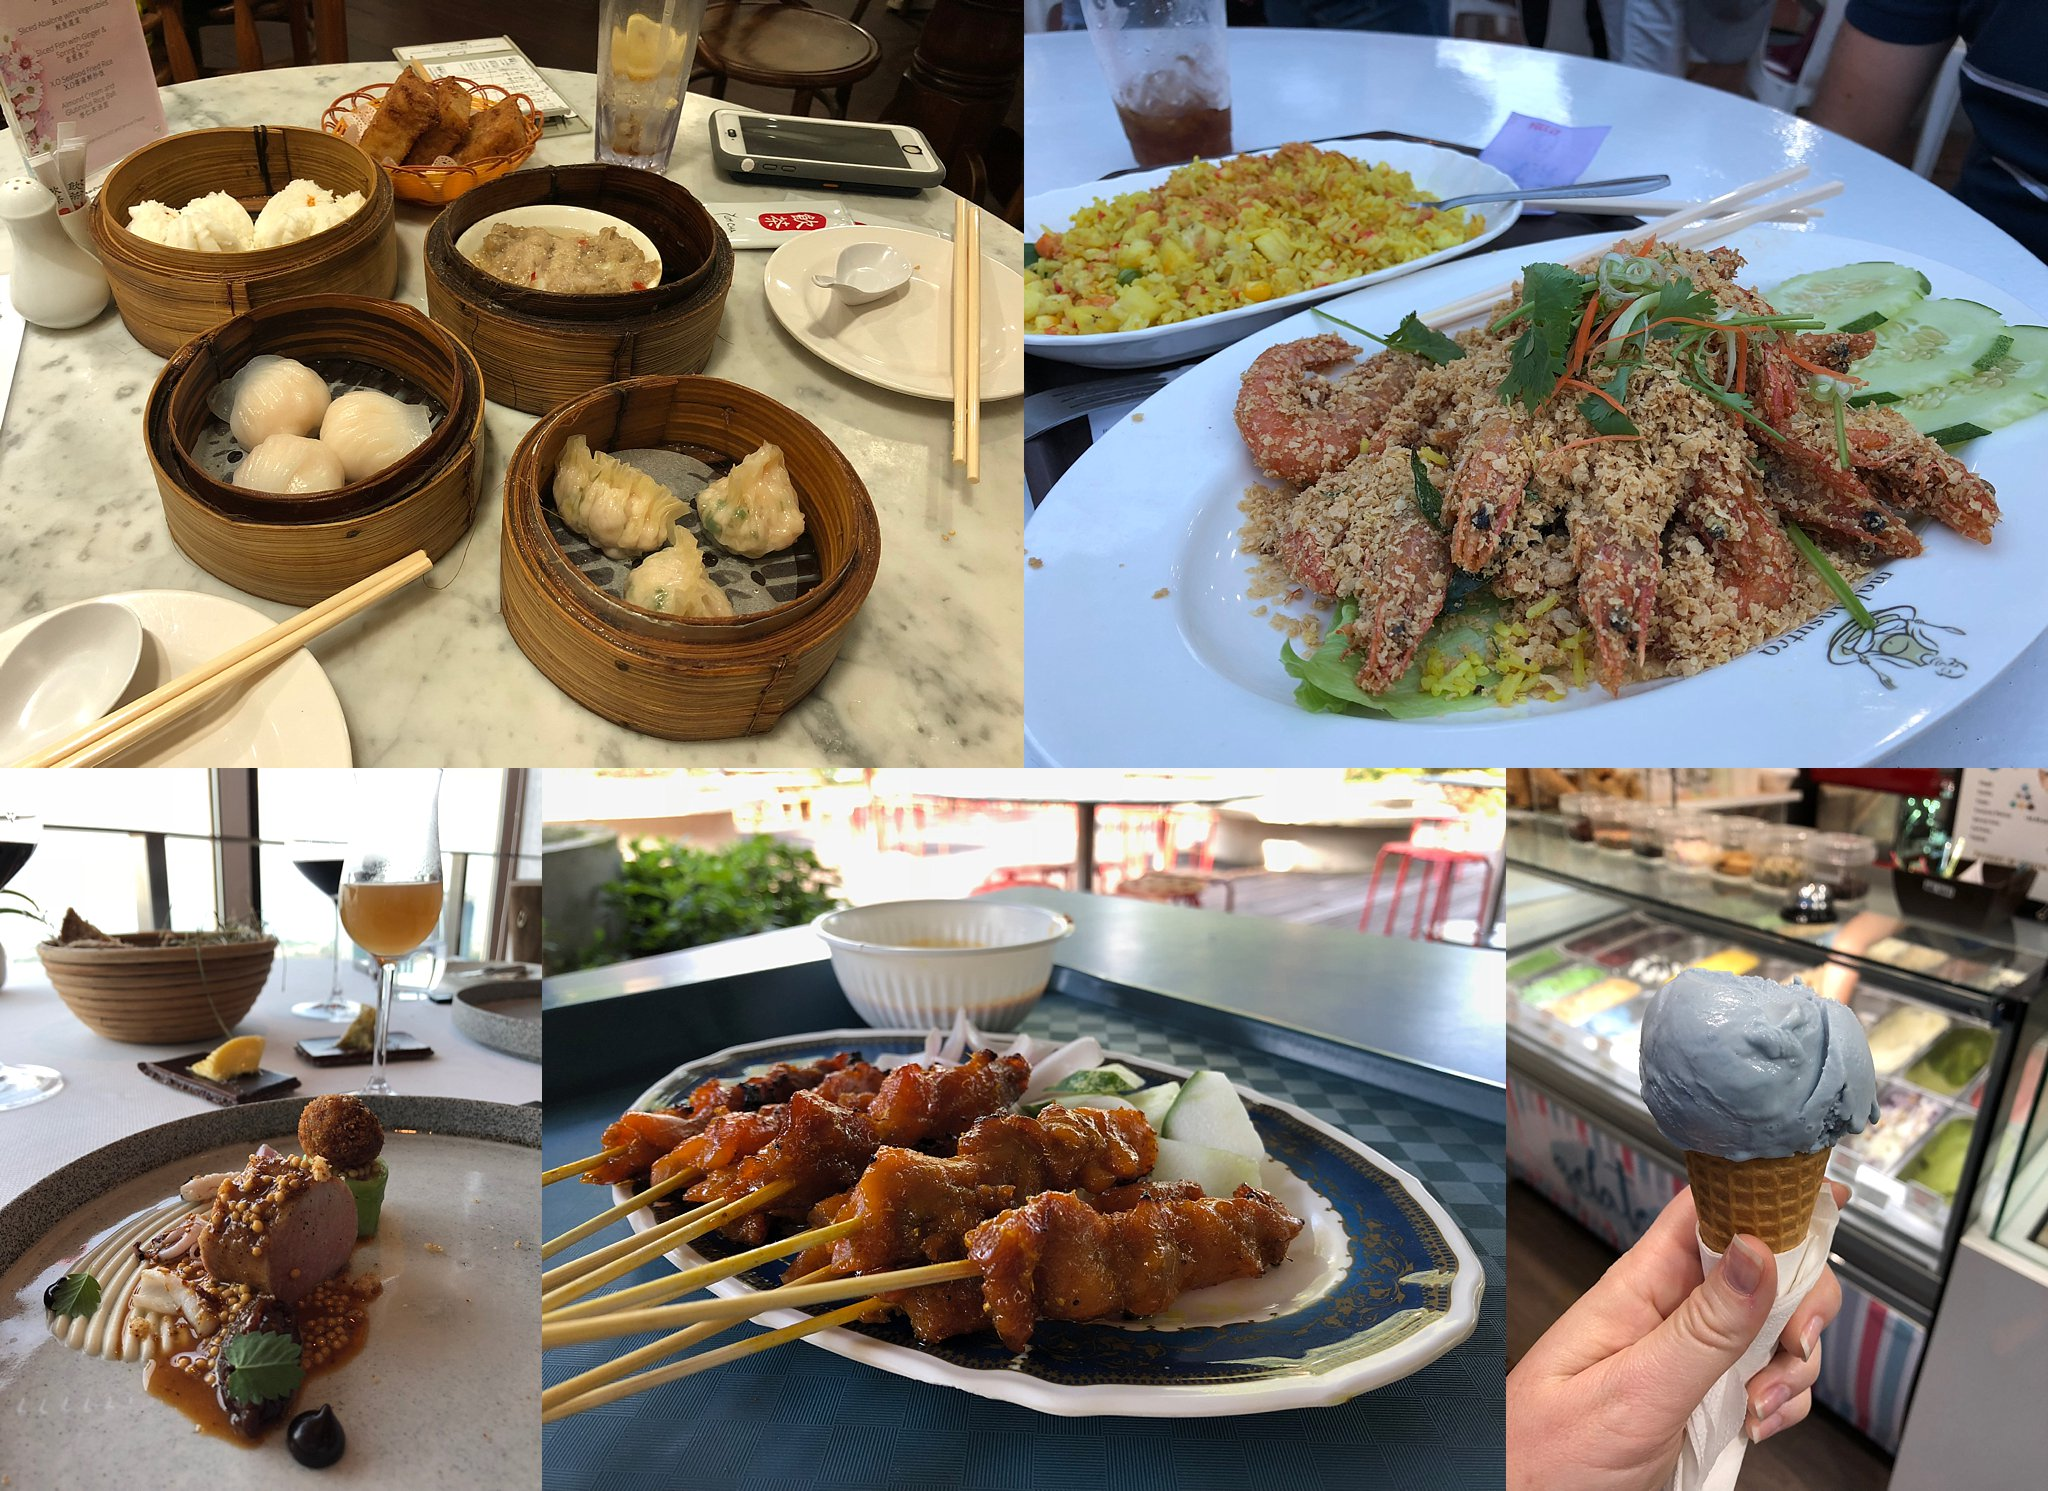 The different food we ate while in Singapore (taken with iPhone 8)